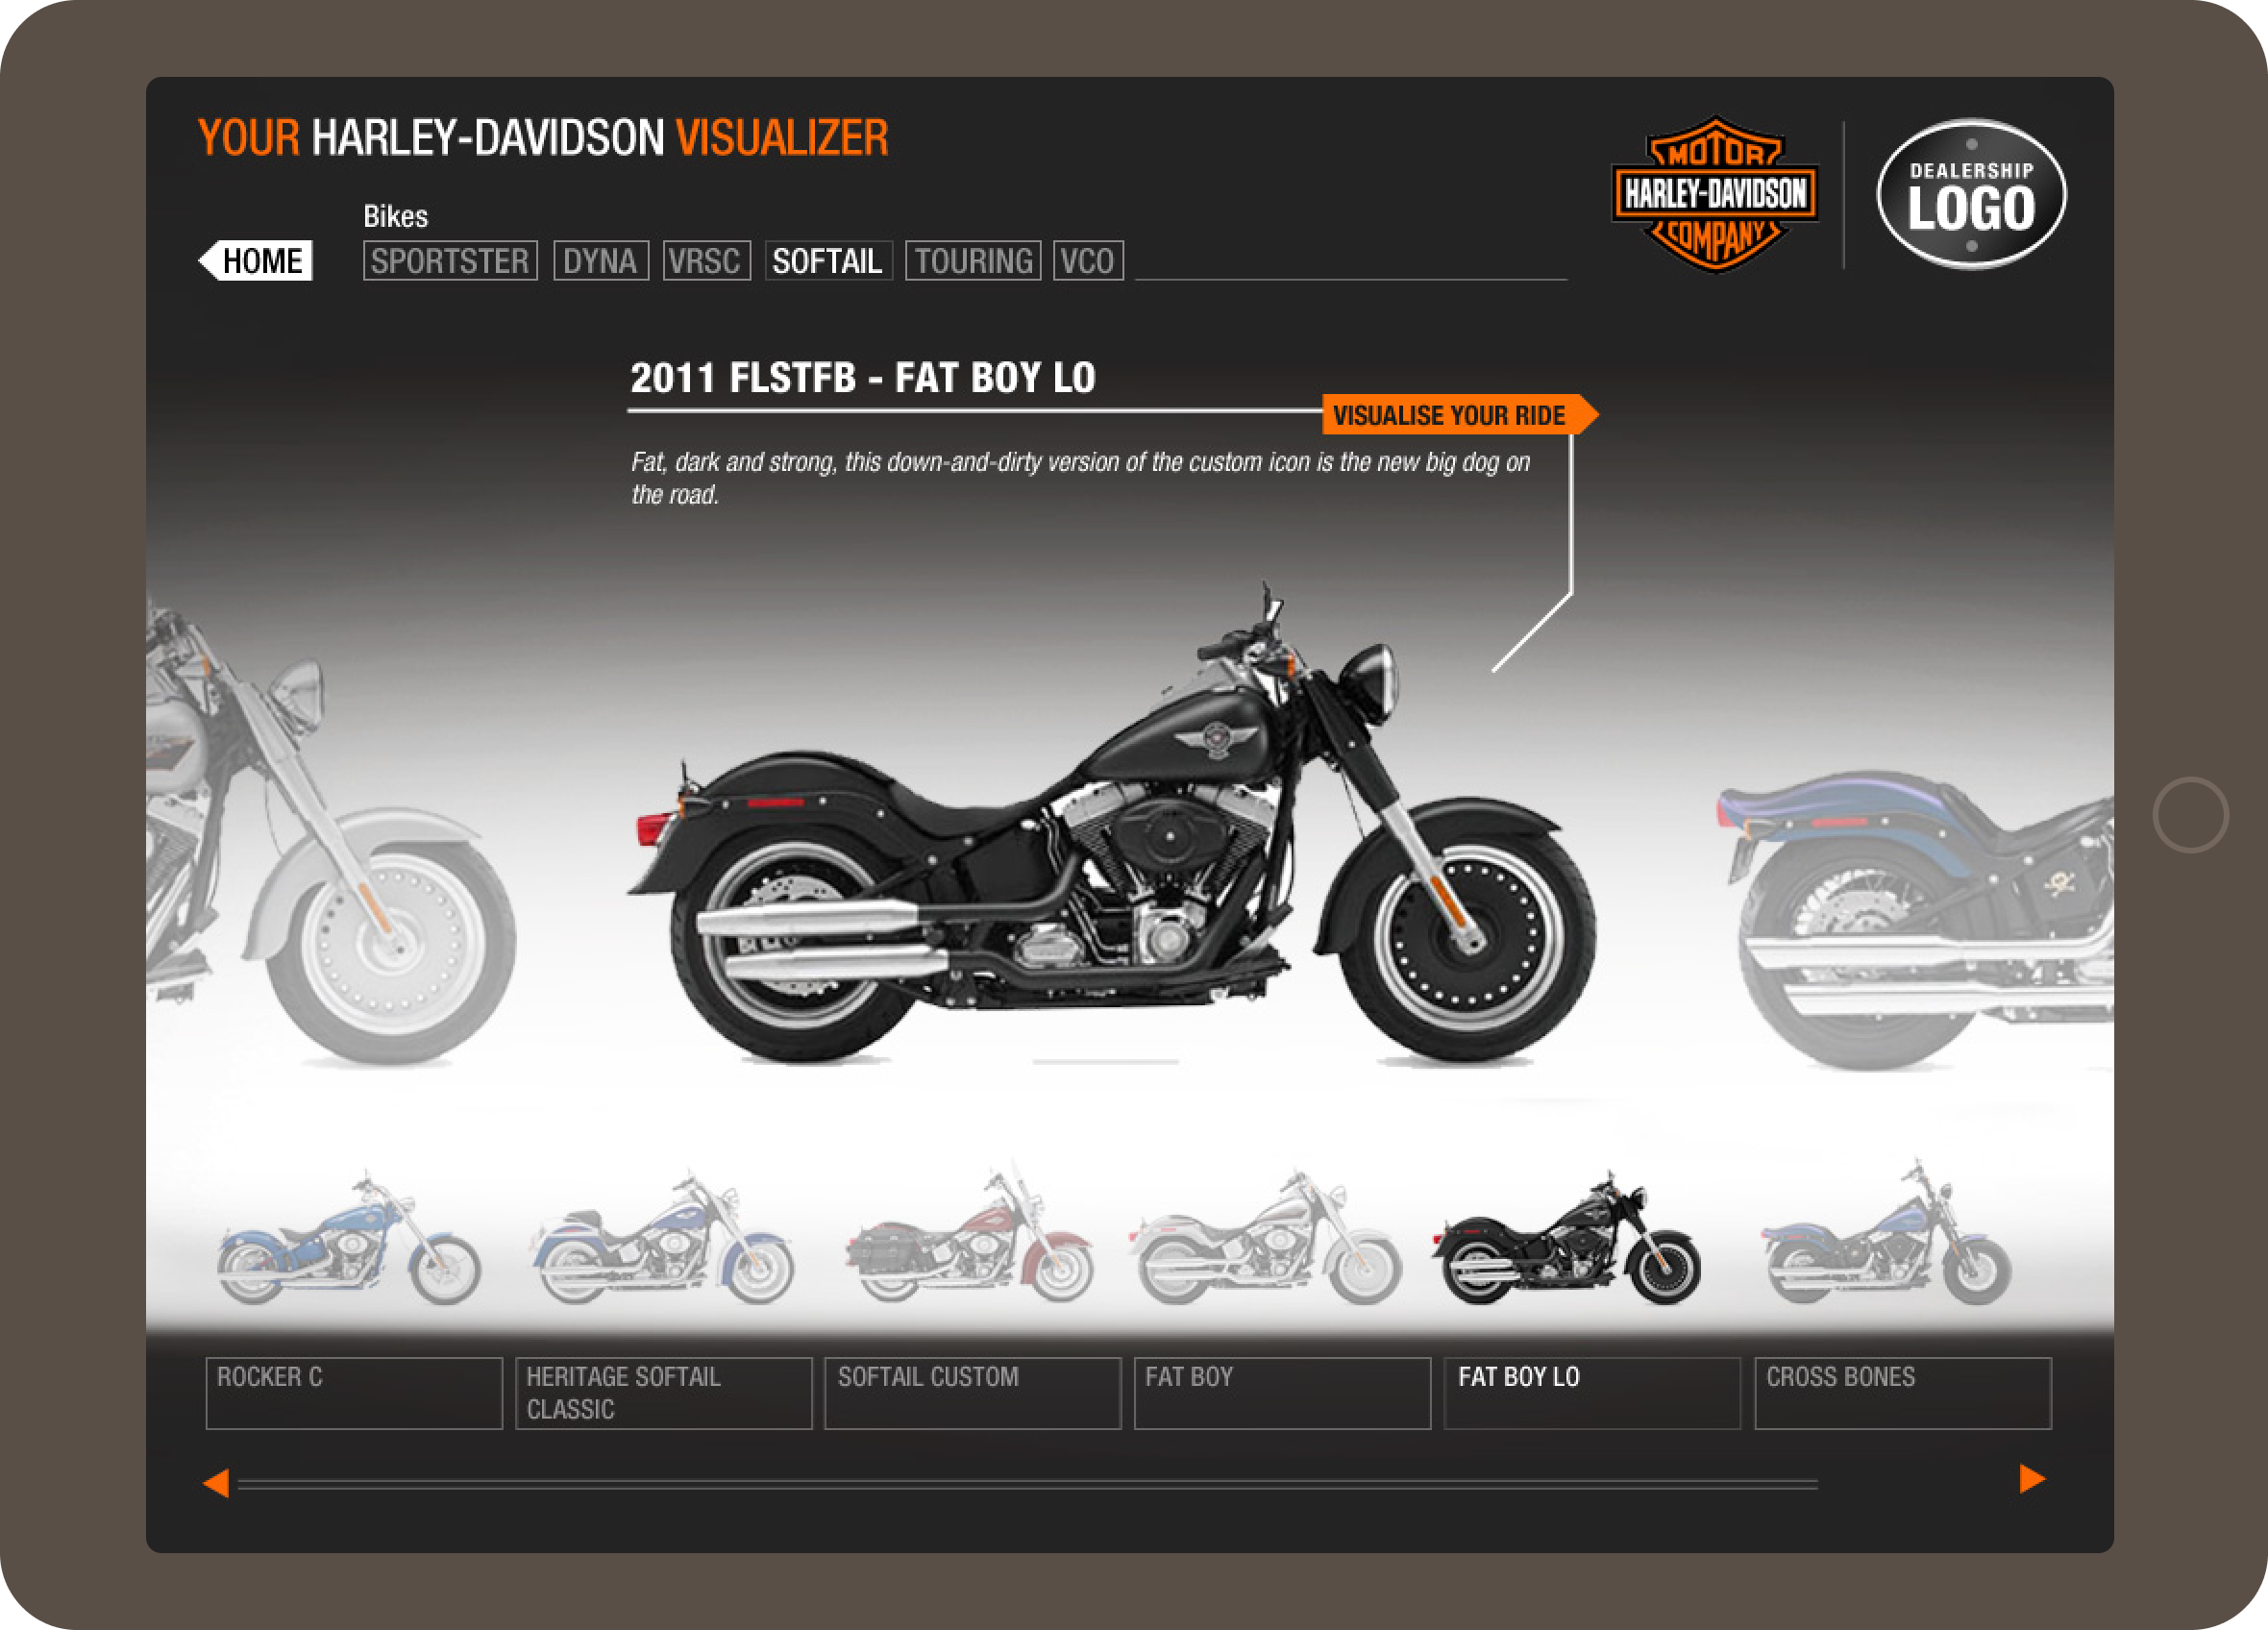 harley-davidson-visualizer-bike-selection